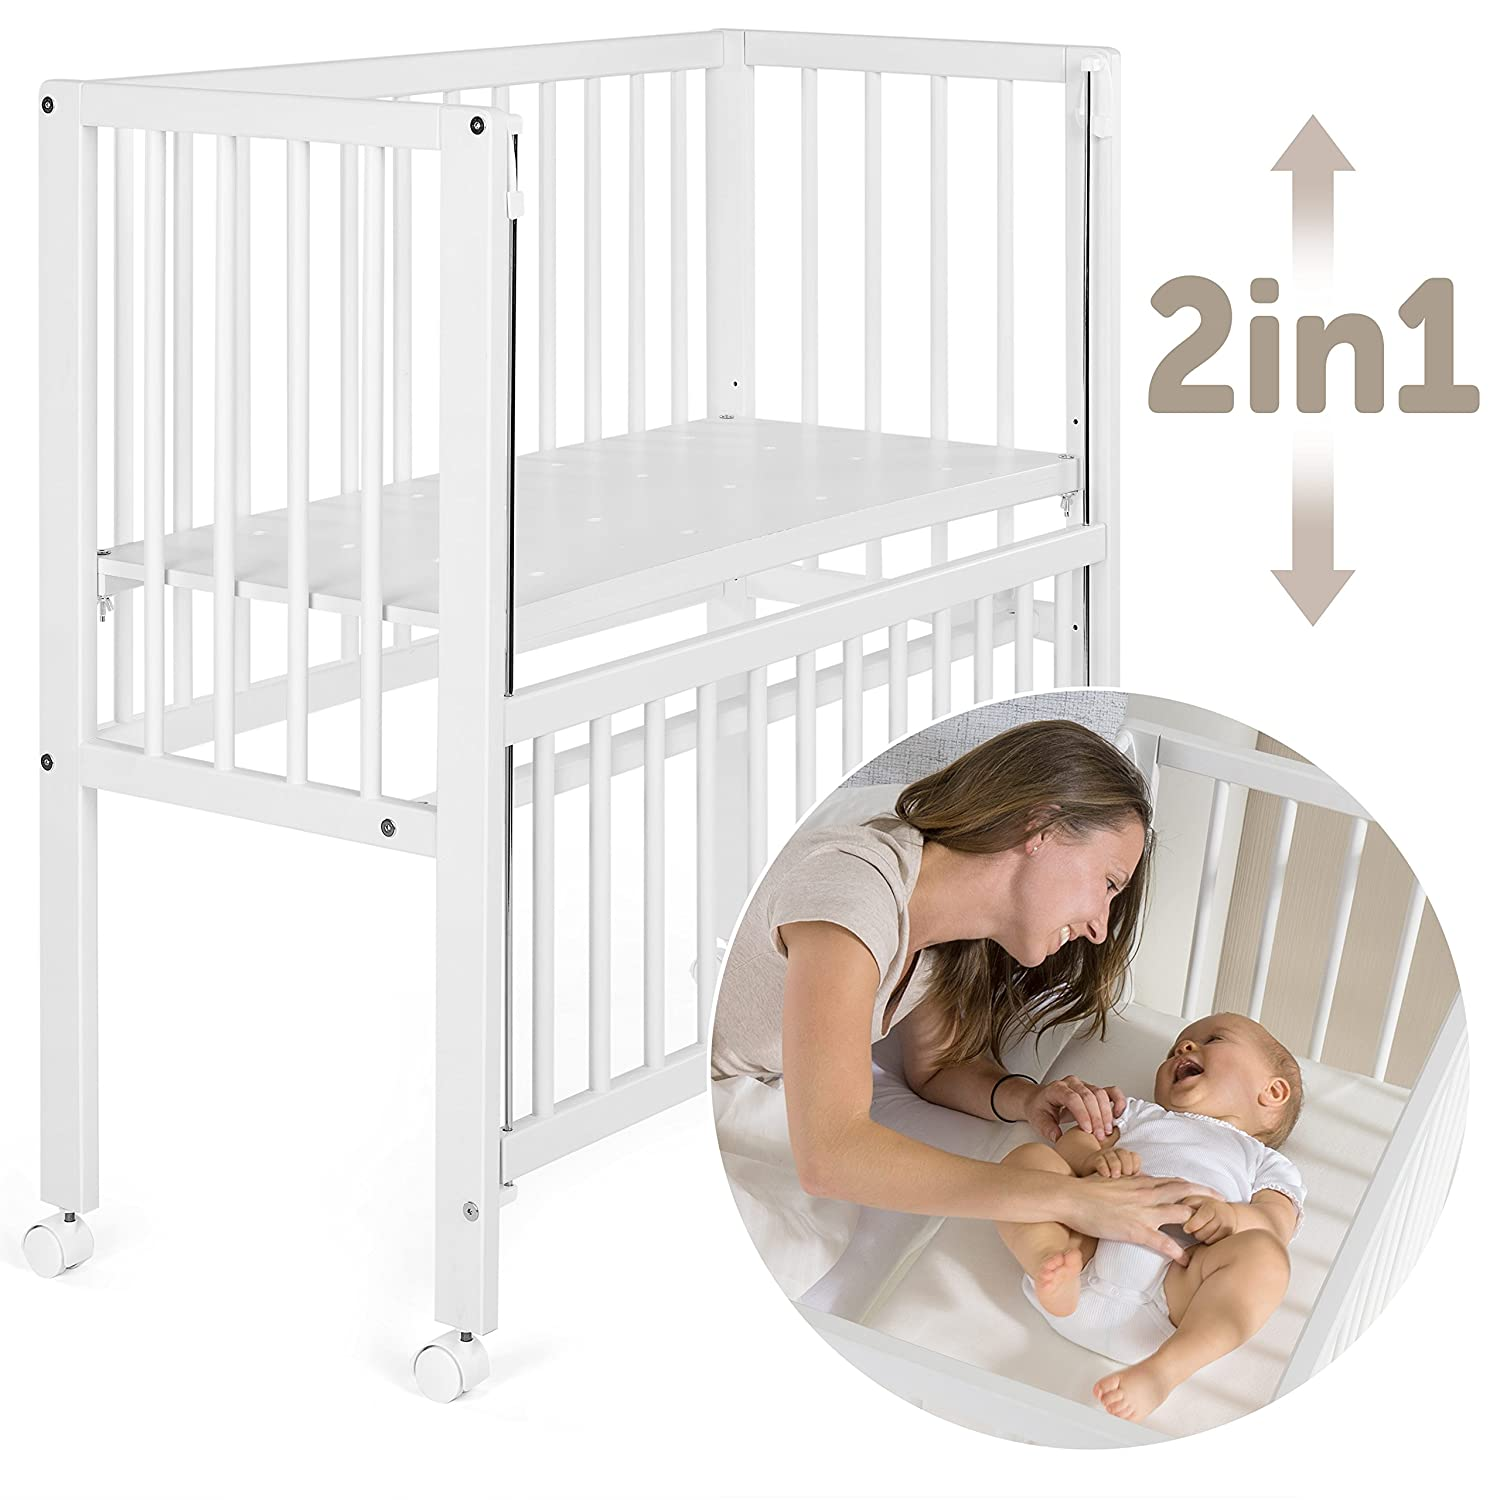 Fillikid Babybett Vario 2in1